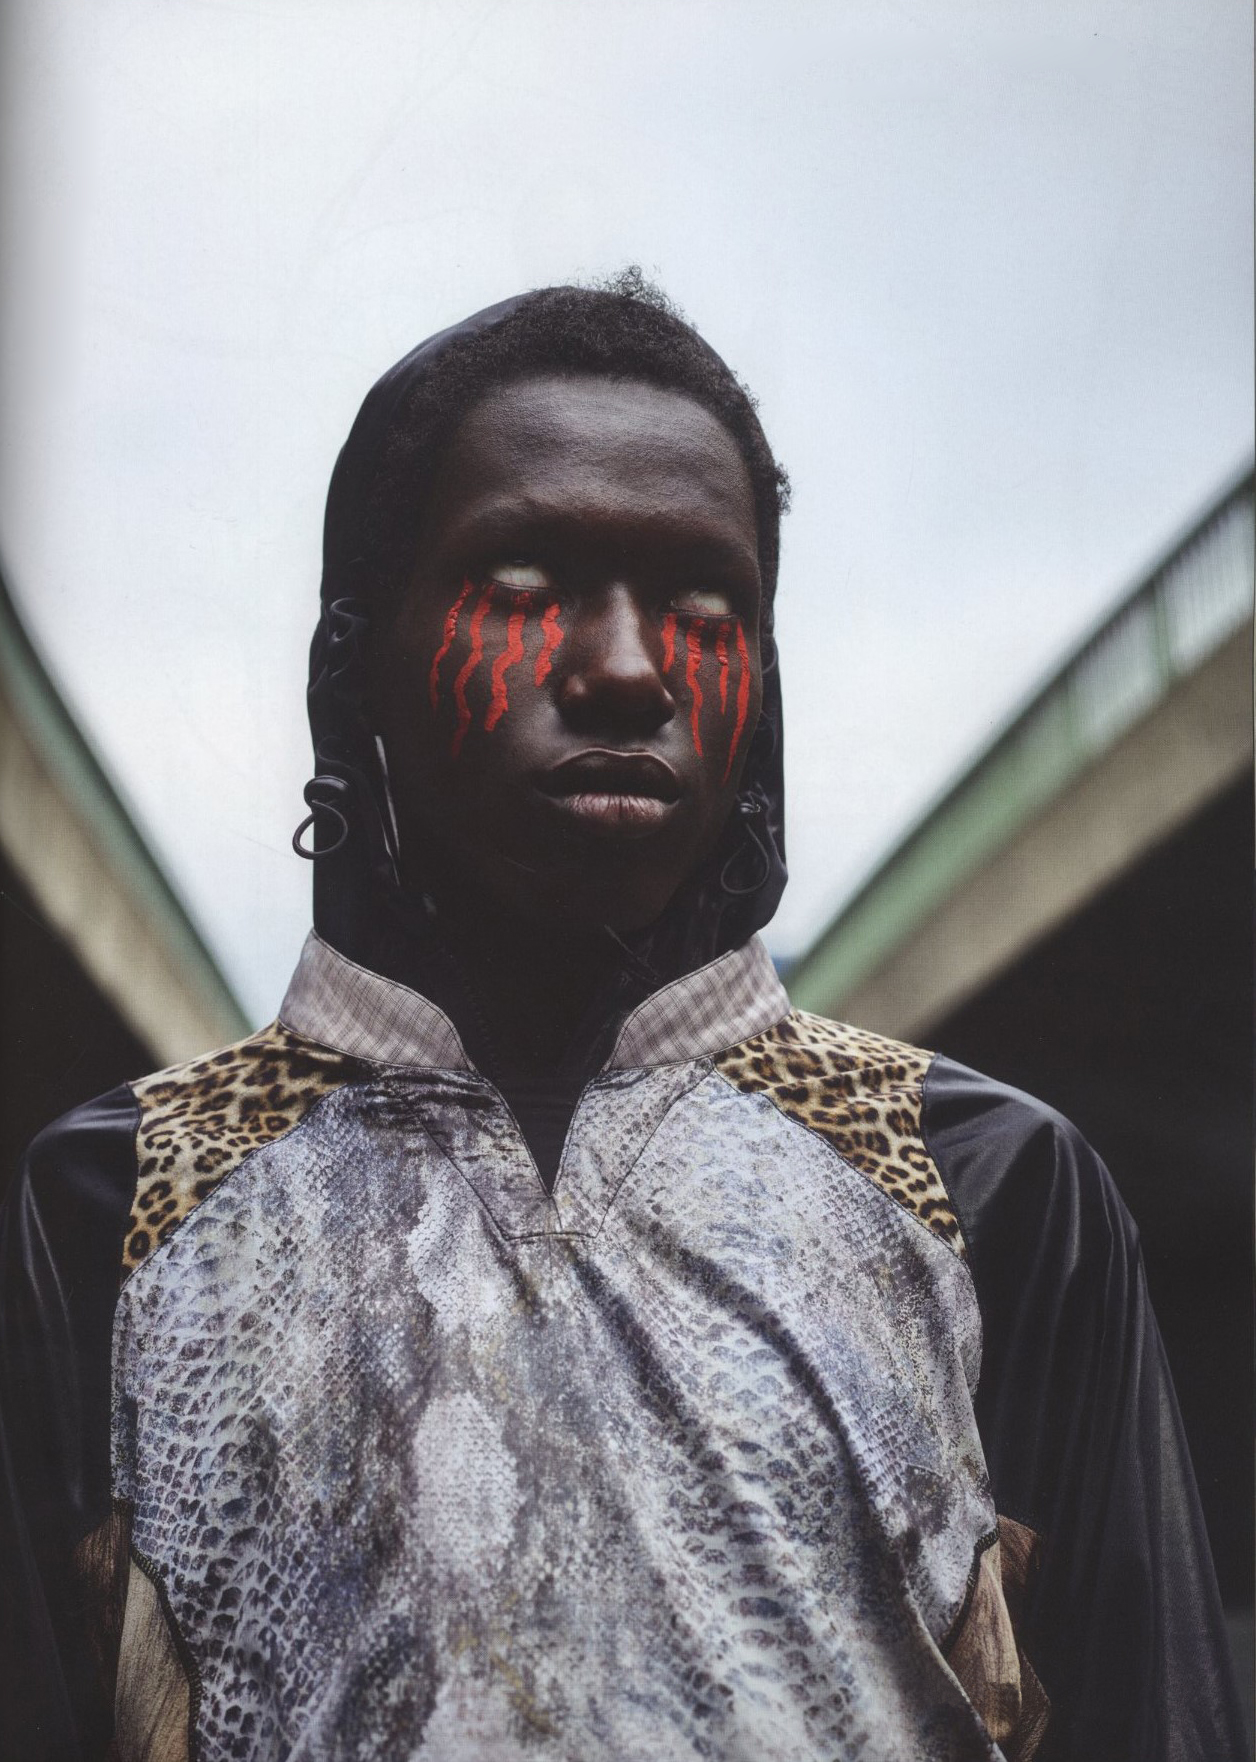 EUROPA | PHOTOGRAPHY PIETER HUGO | STYLING JO BARKER | RE-EDITION | ISSUE 9 | SPRING/SUMMER 2018